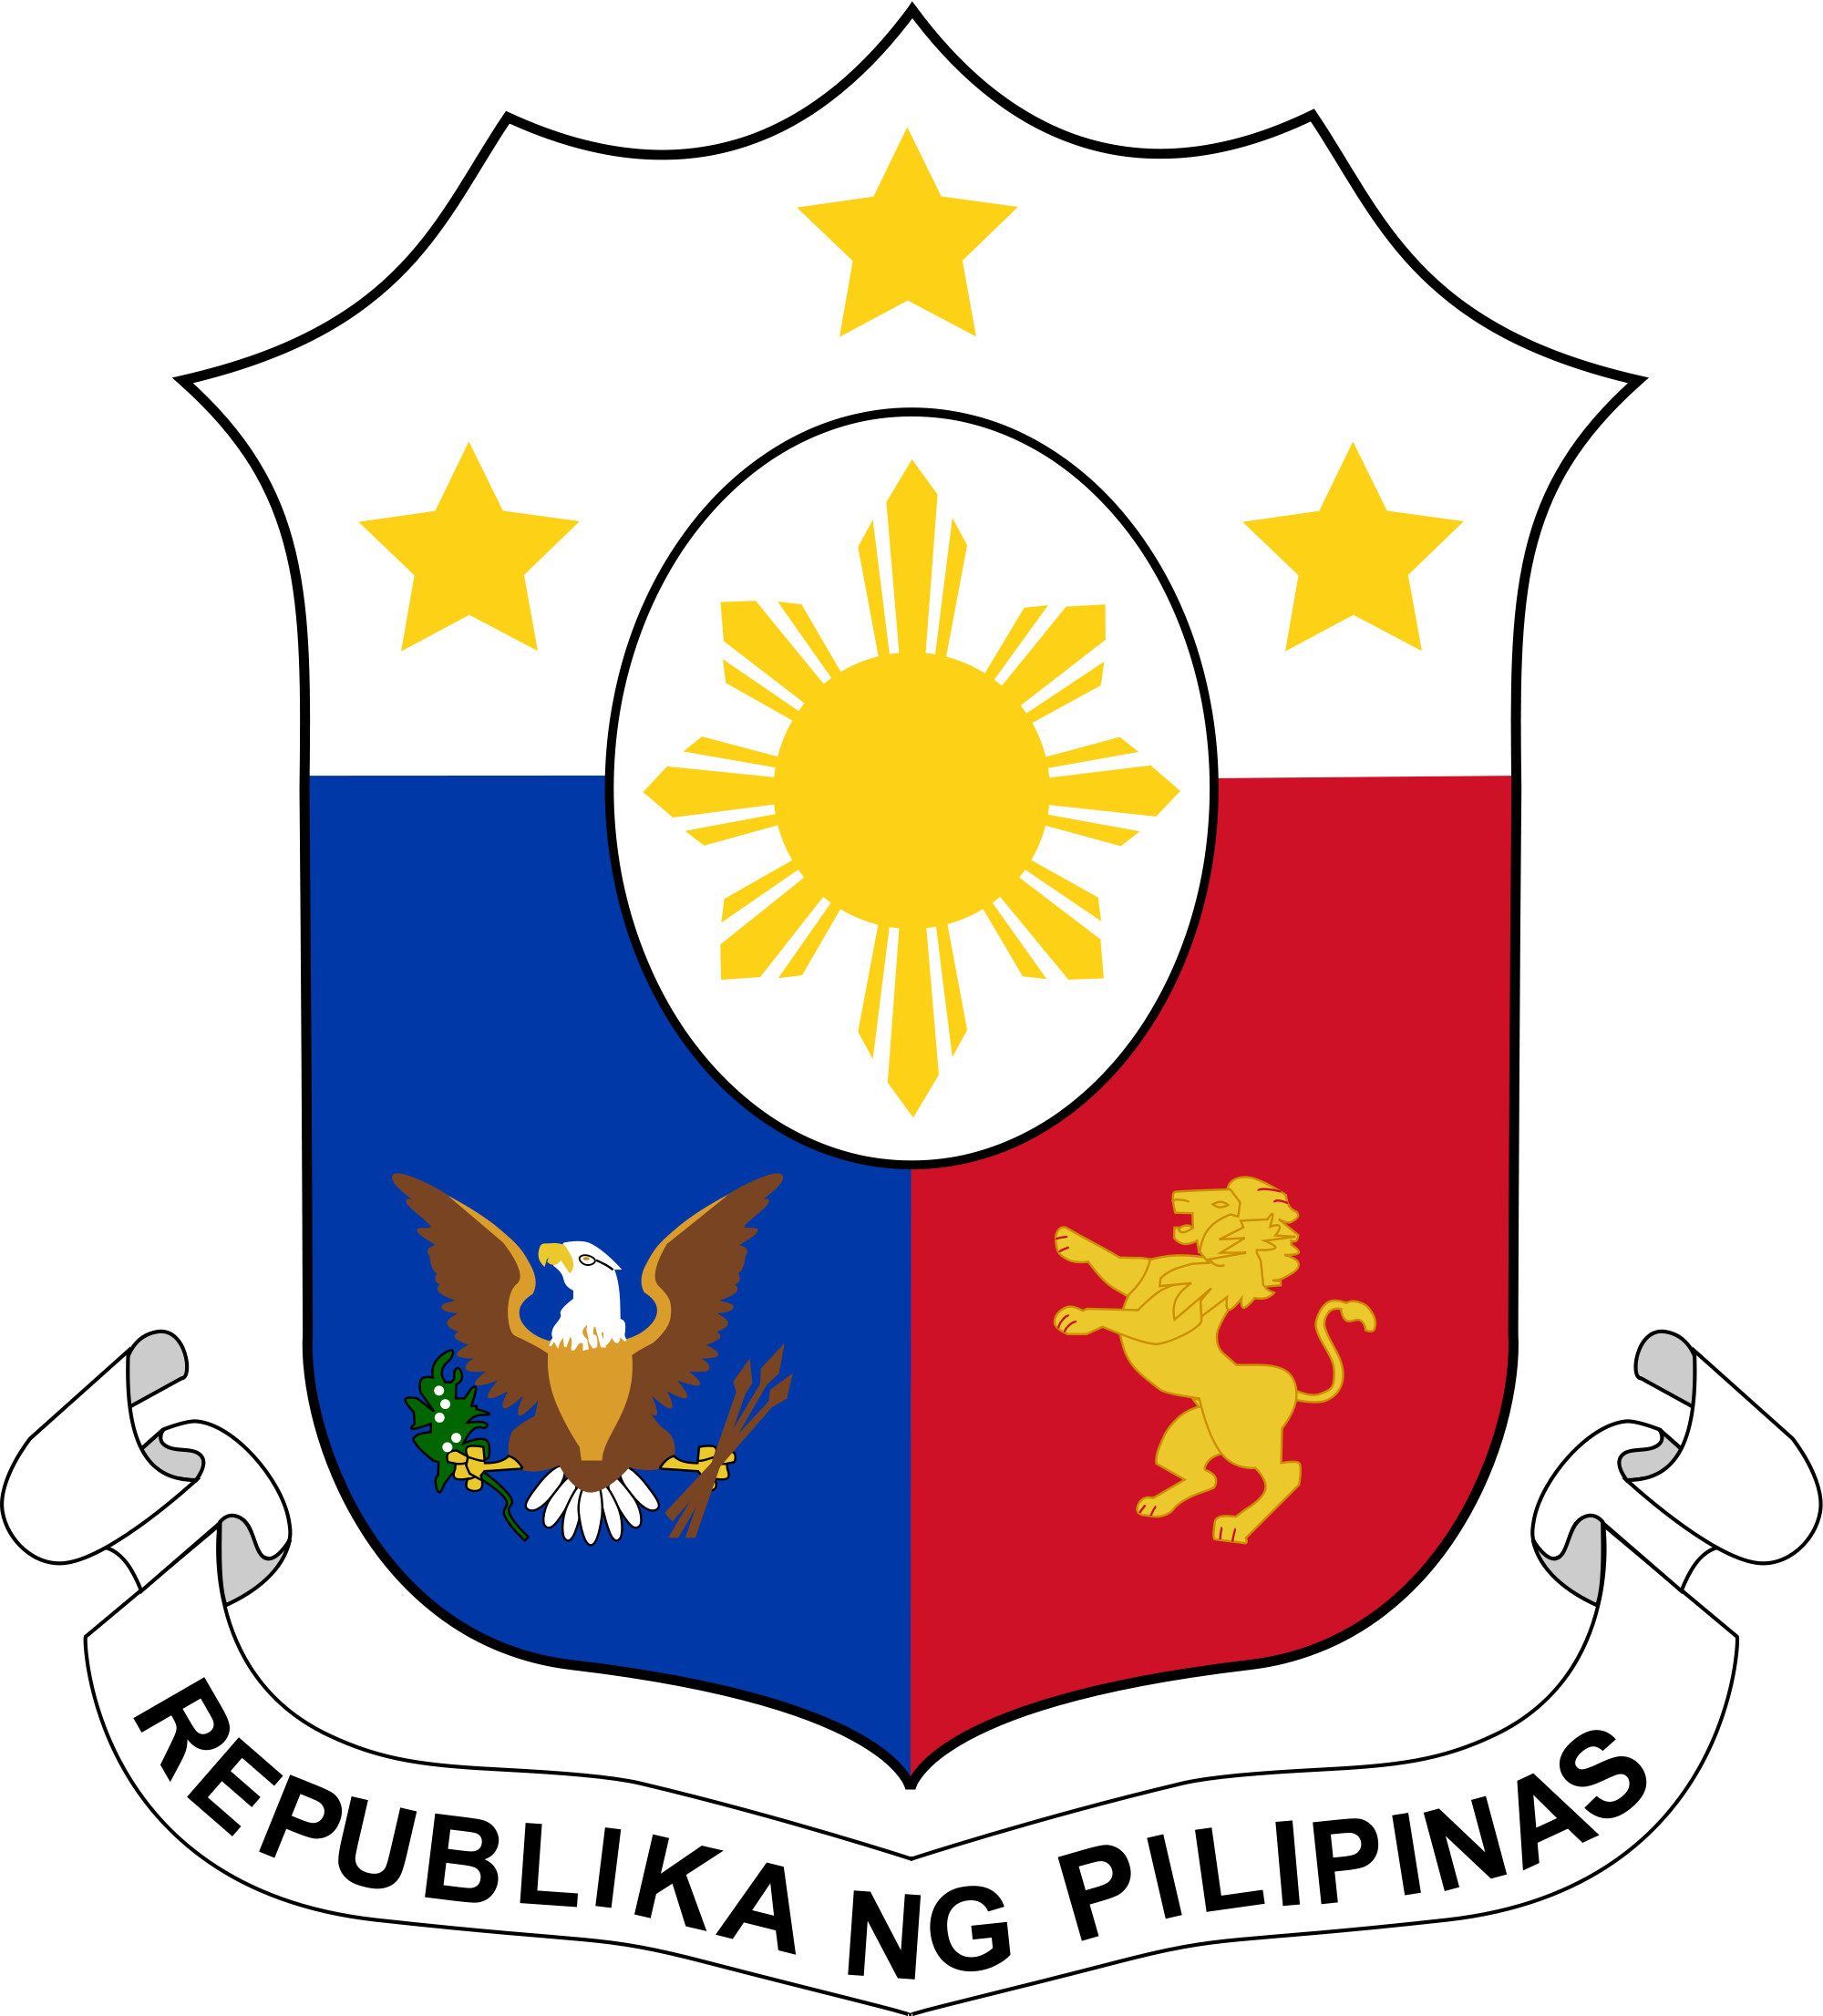 Consular Services to Filipinos in Israel